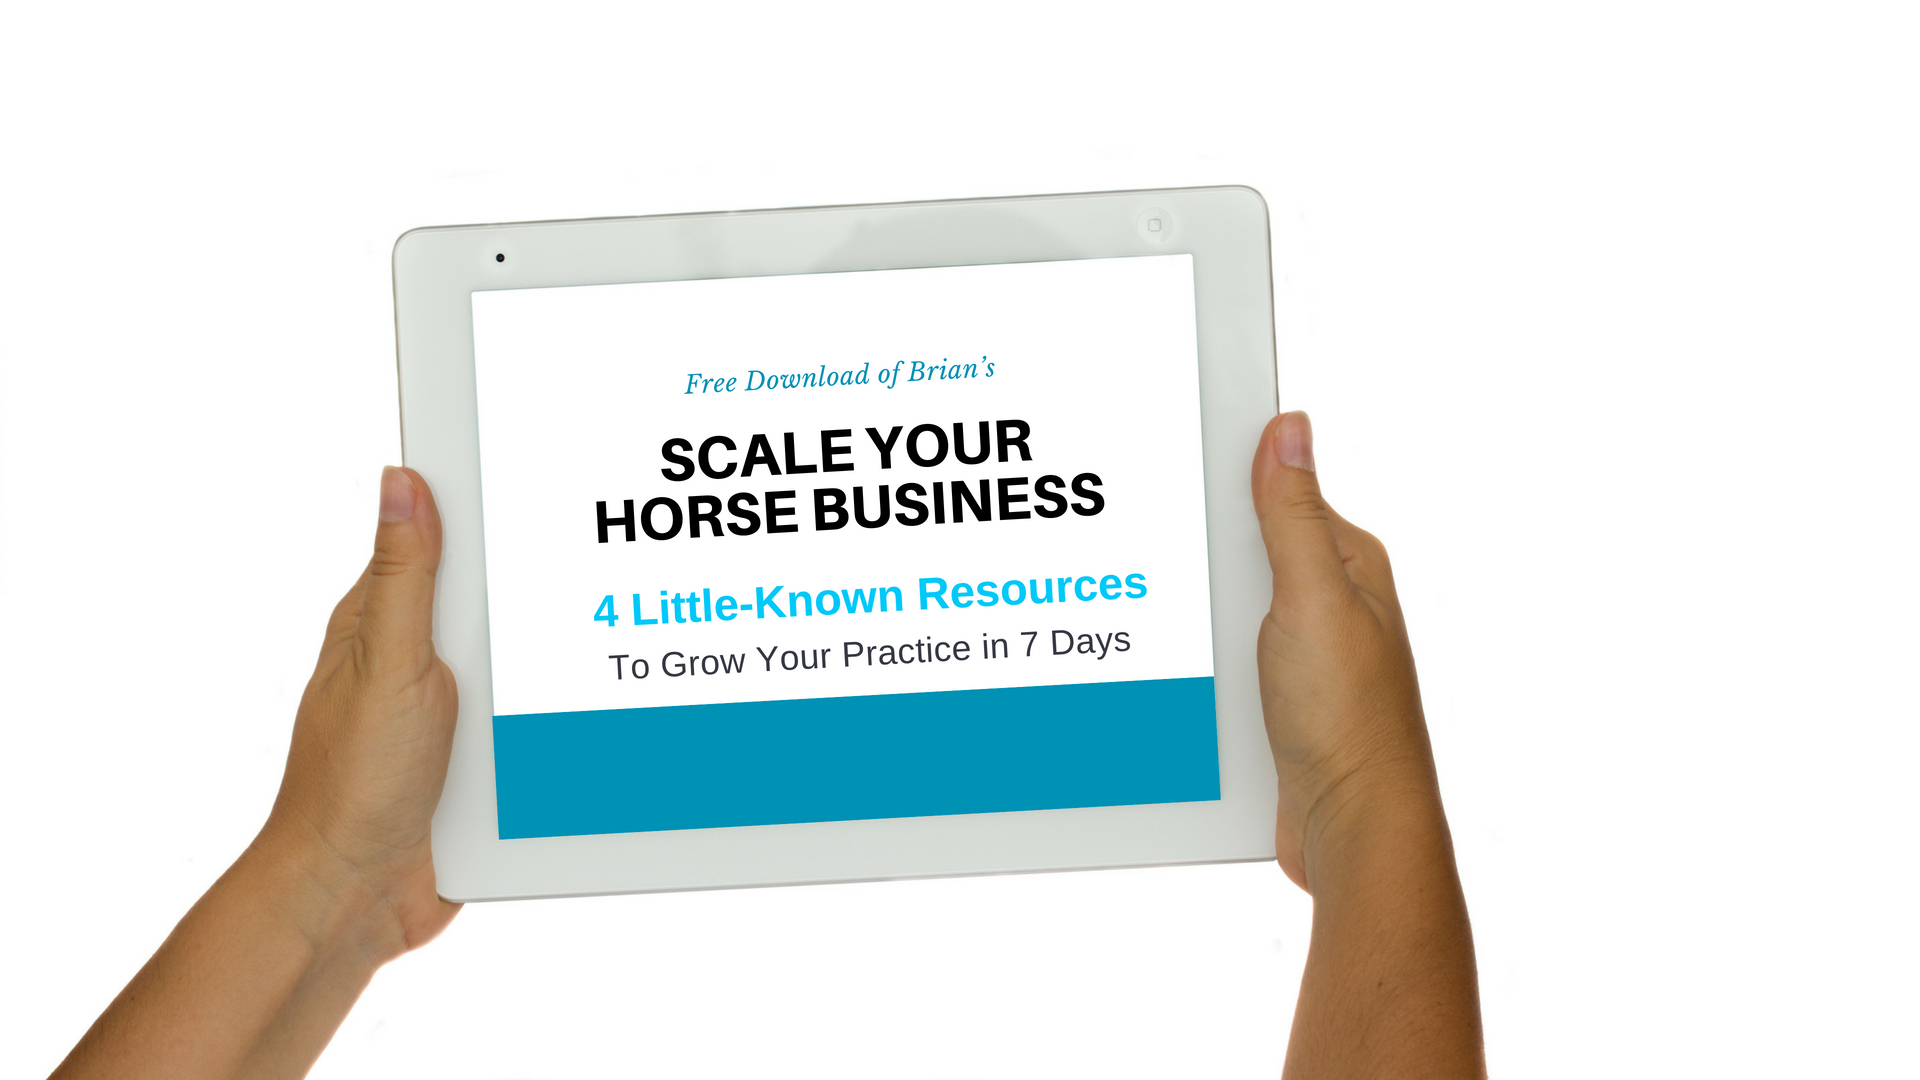 How to Scale Your Horse Business Transparent Hands